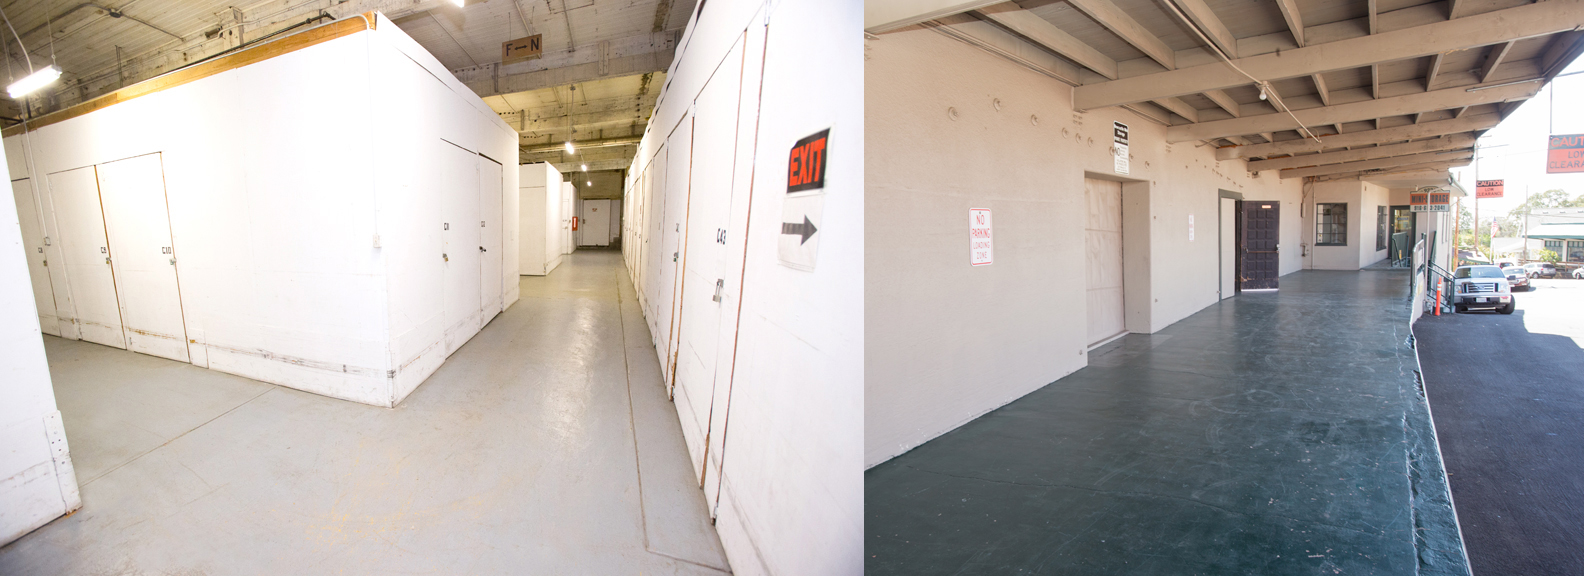 Our units are available in a variety of different shapes and sizes, and we have an easy access loading dock